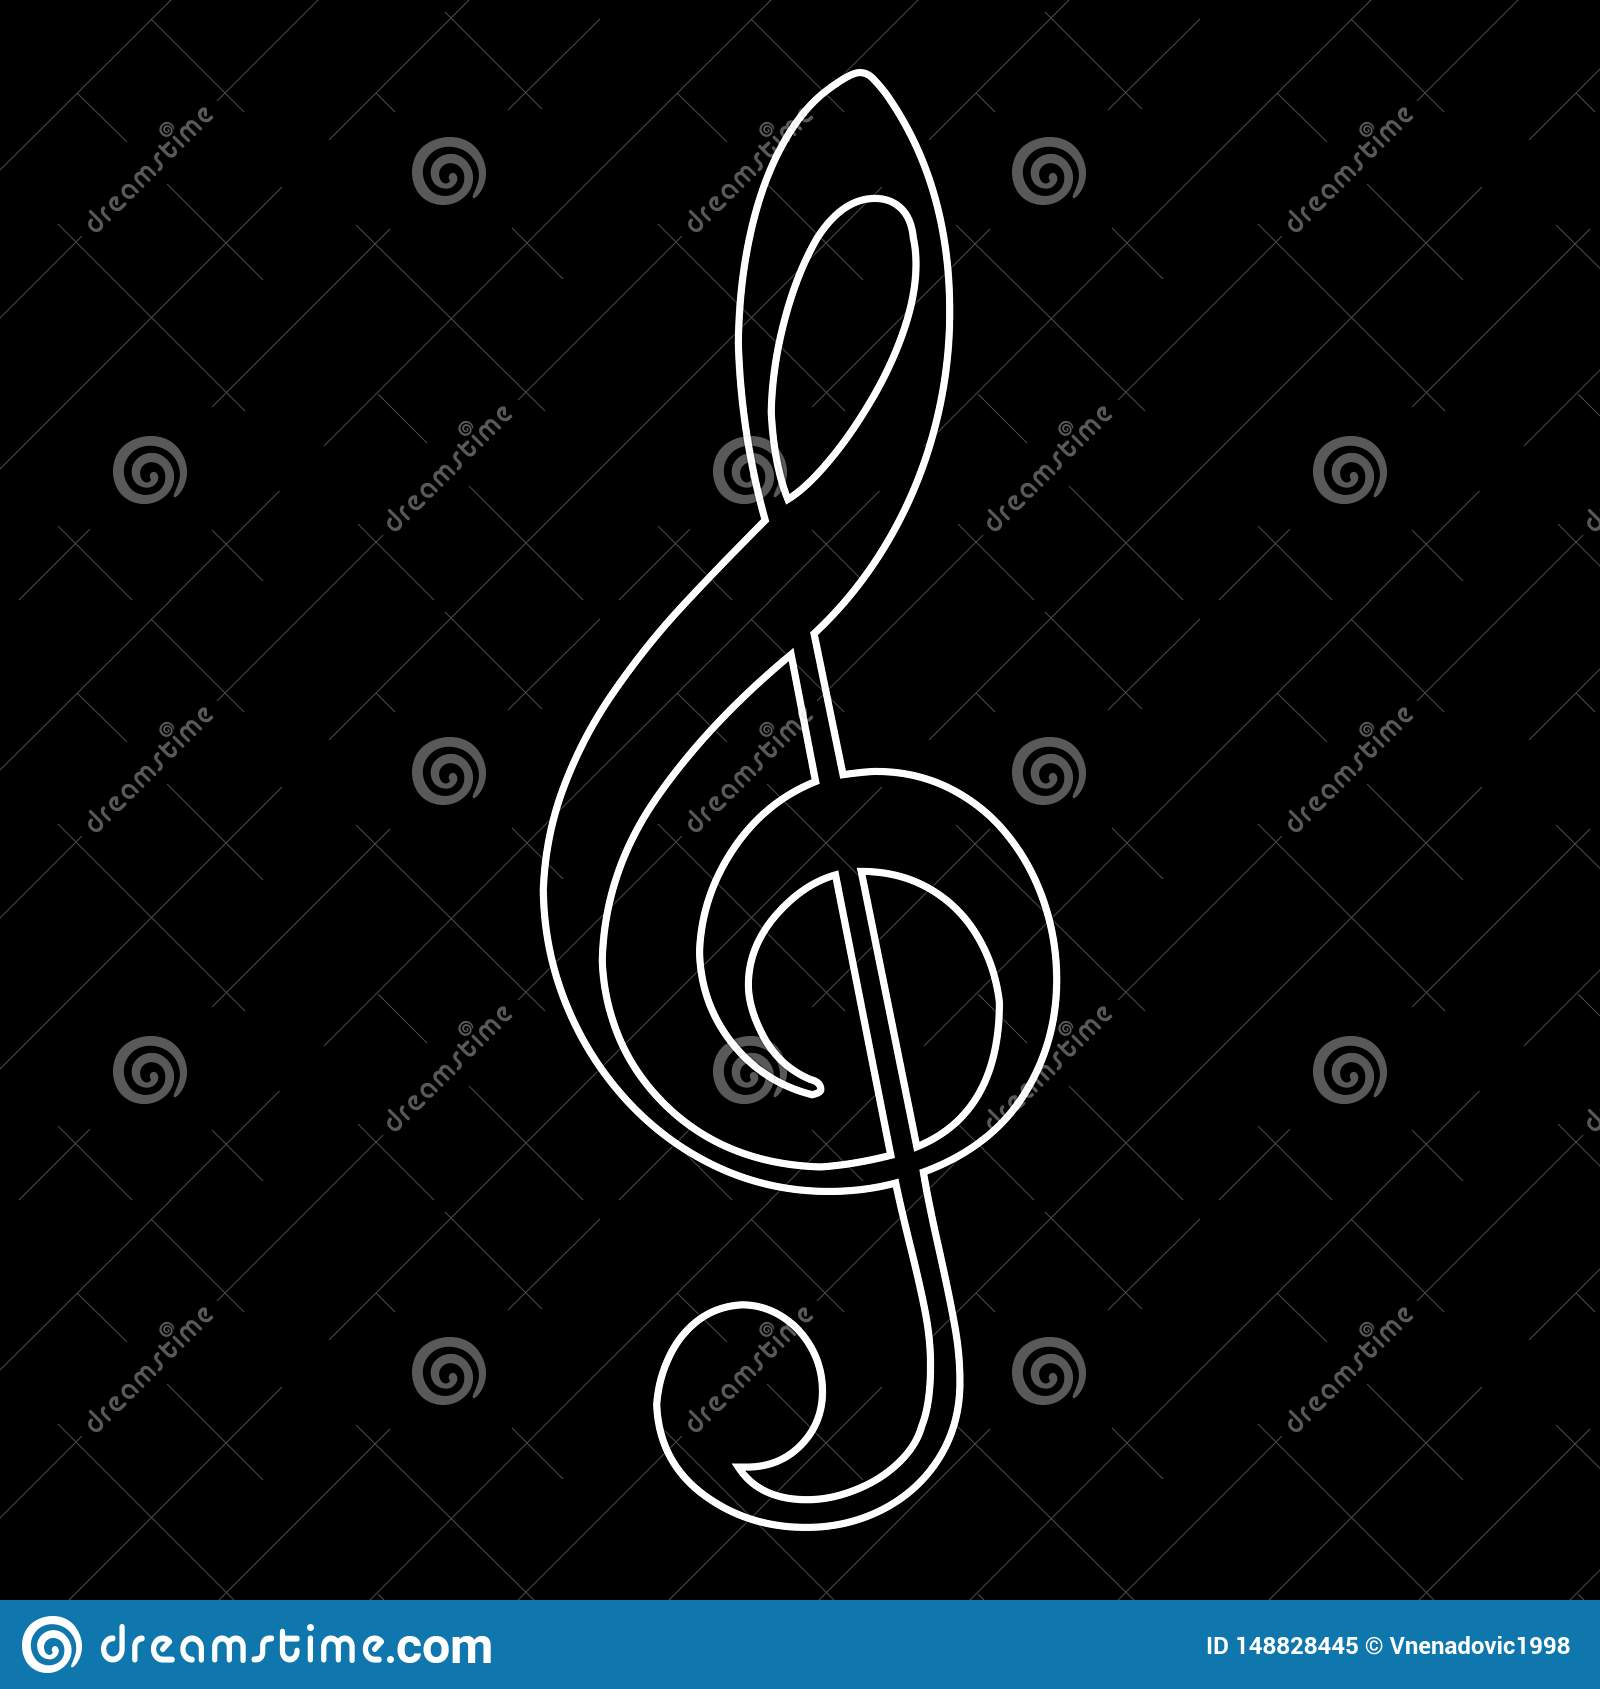 Treble clef icon, music note, vector illustration